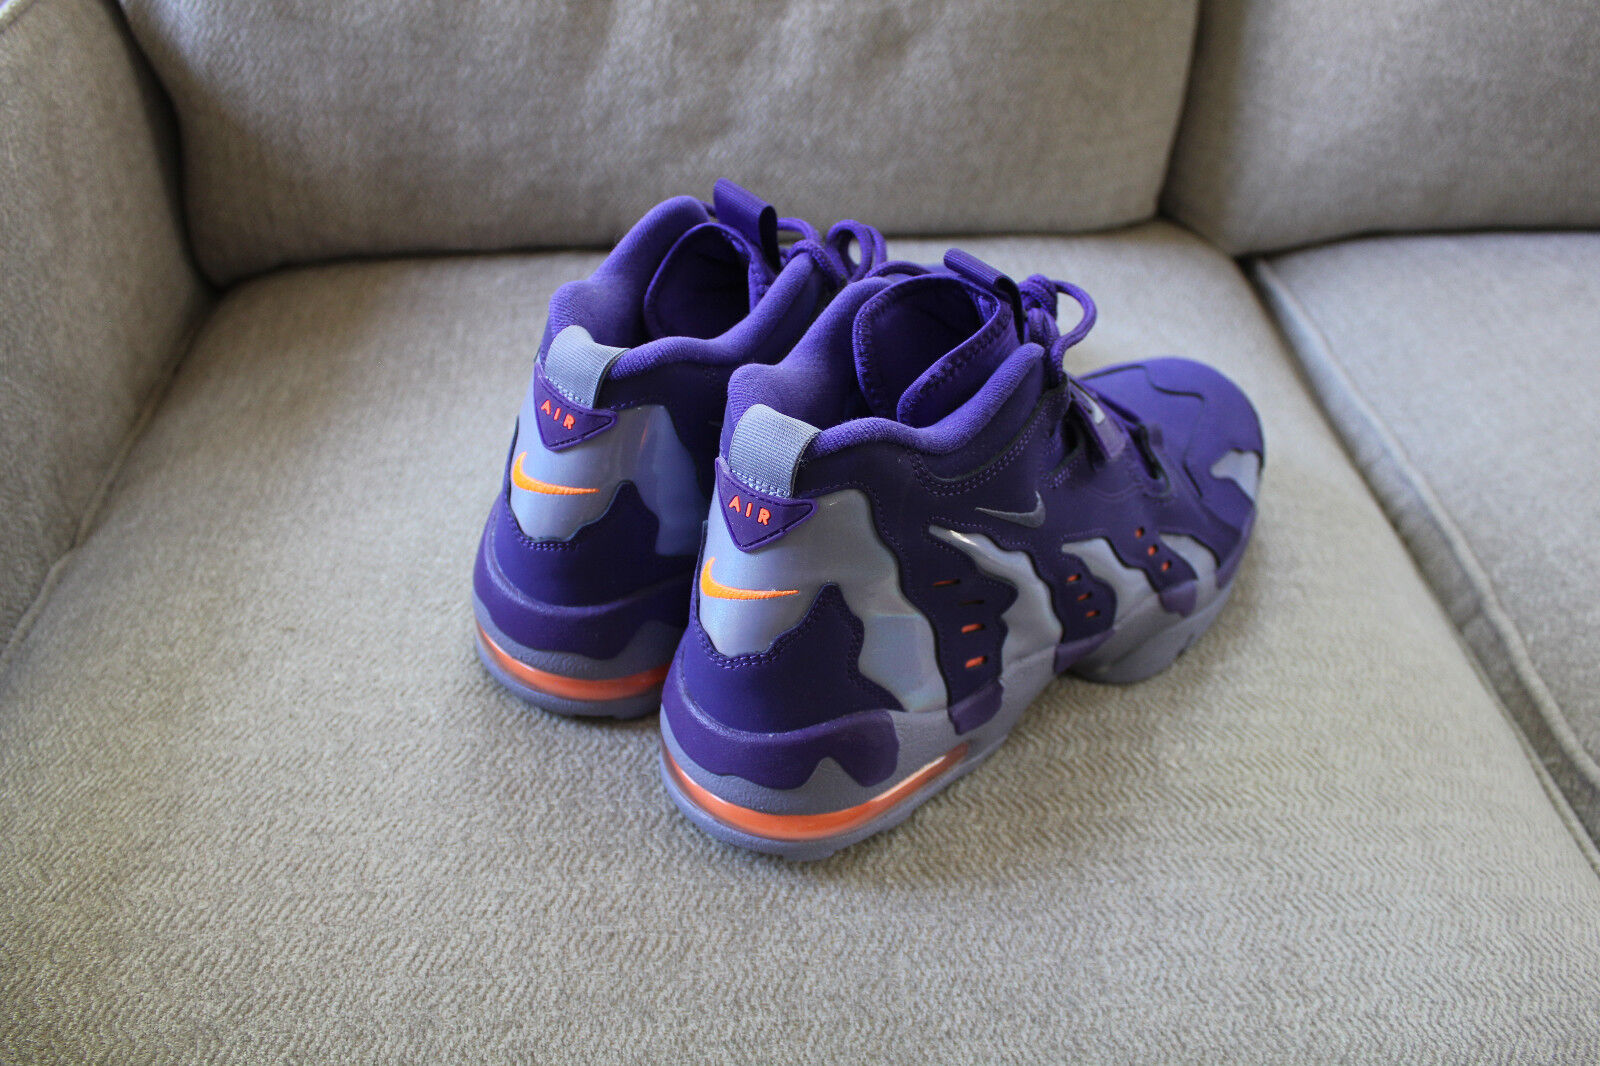 Brand New Nike Air DT Max '96 Court Purple Orange 316408-500 D. Sanders Size 13